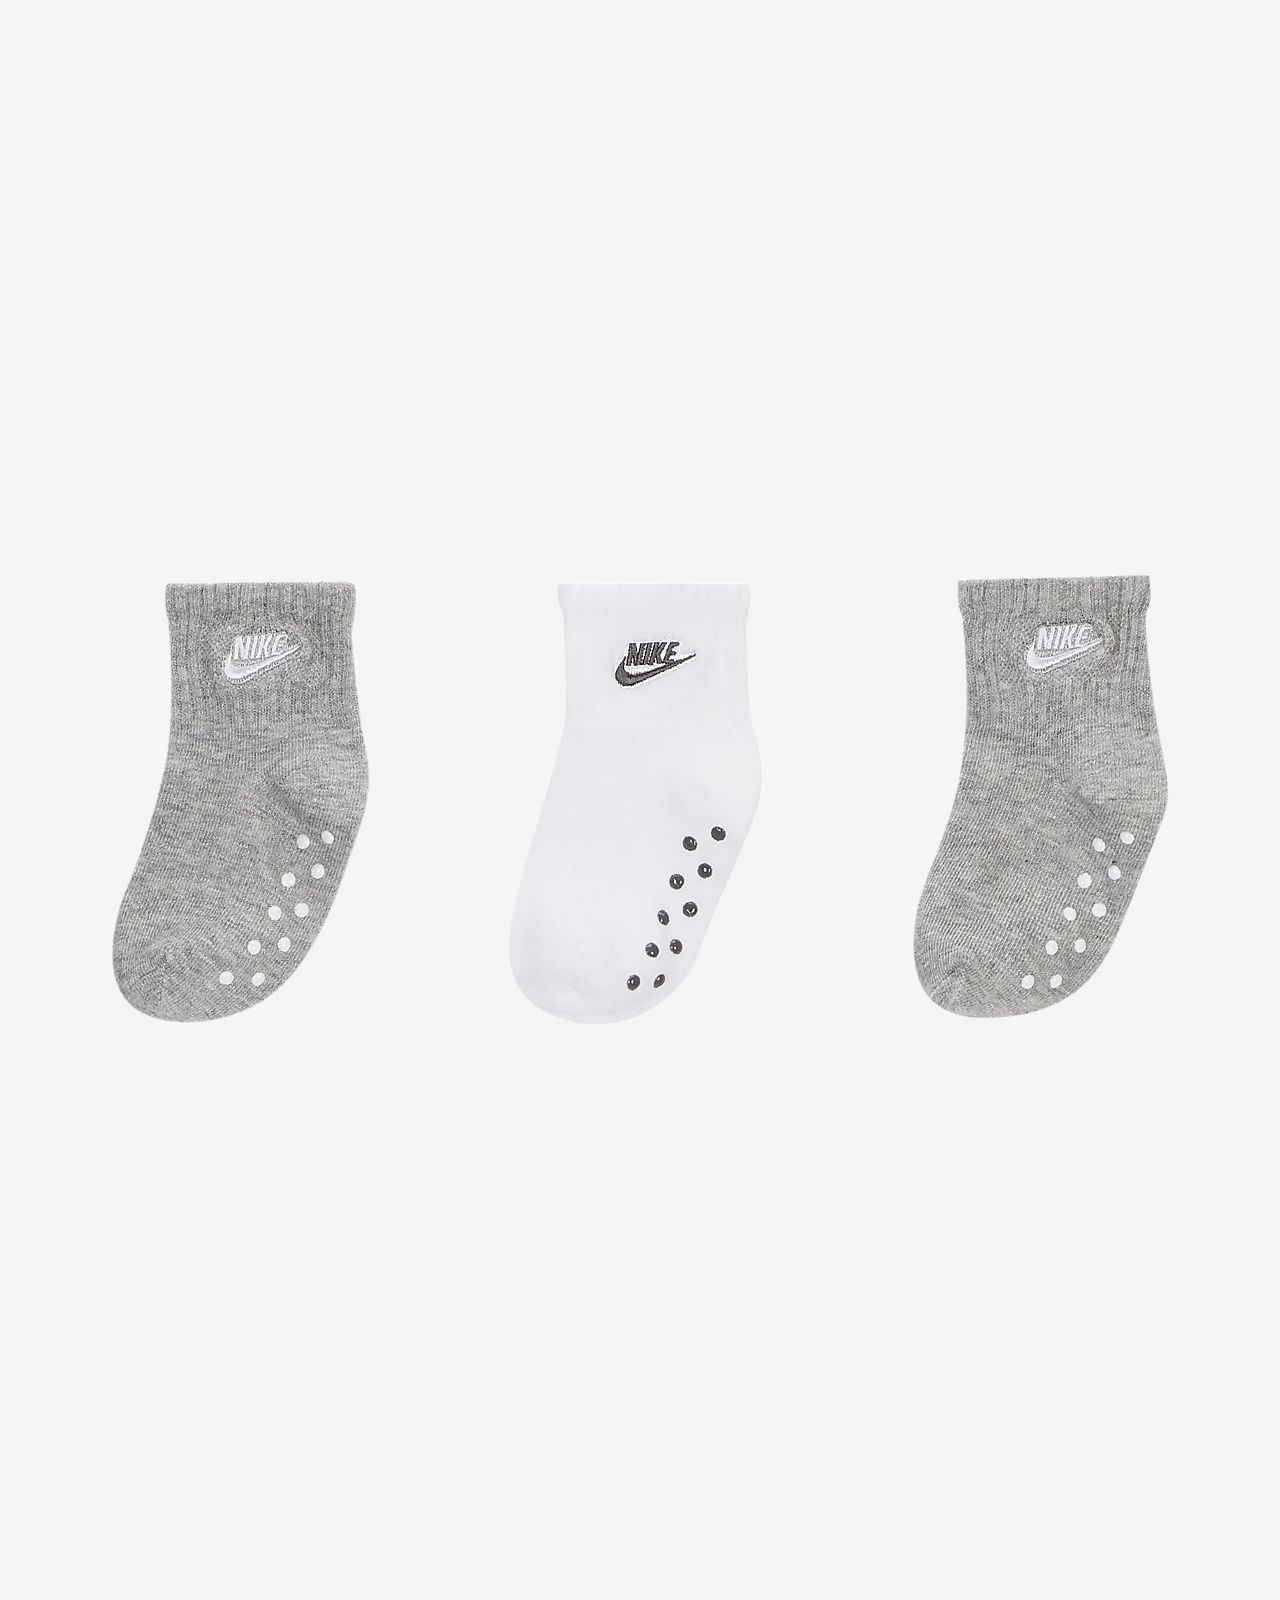 Nike Toddler Gripper Ankle Socks (3-Pack)